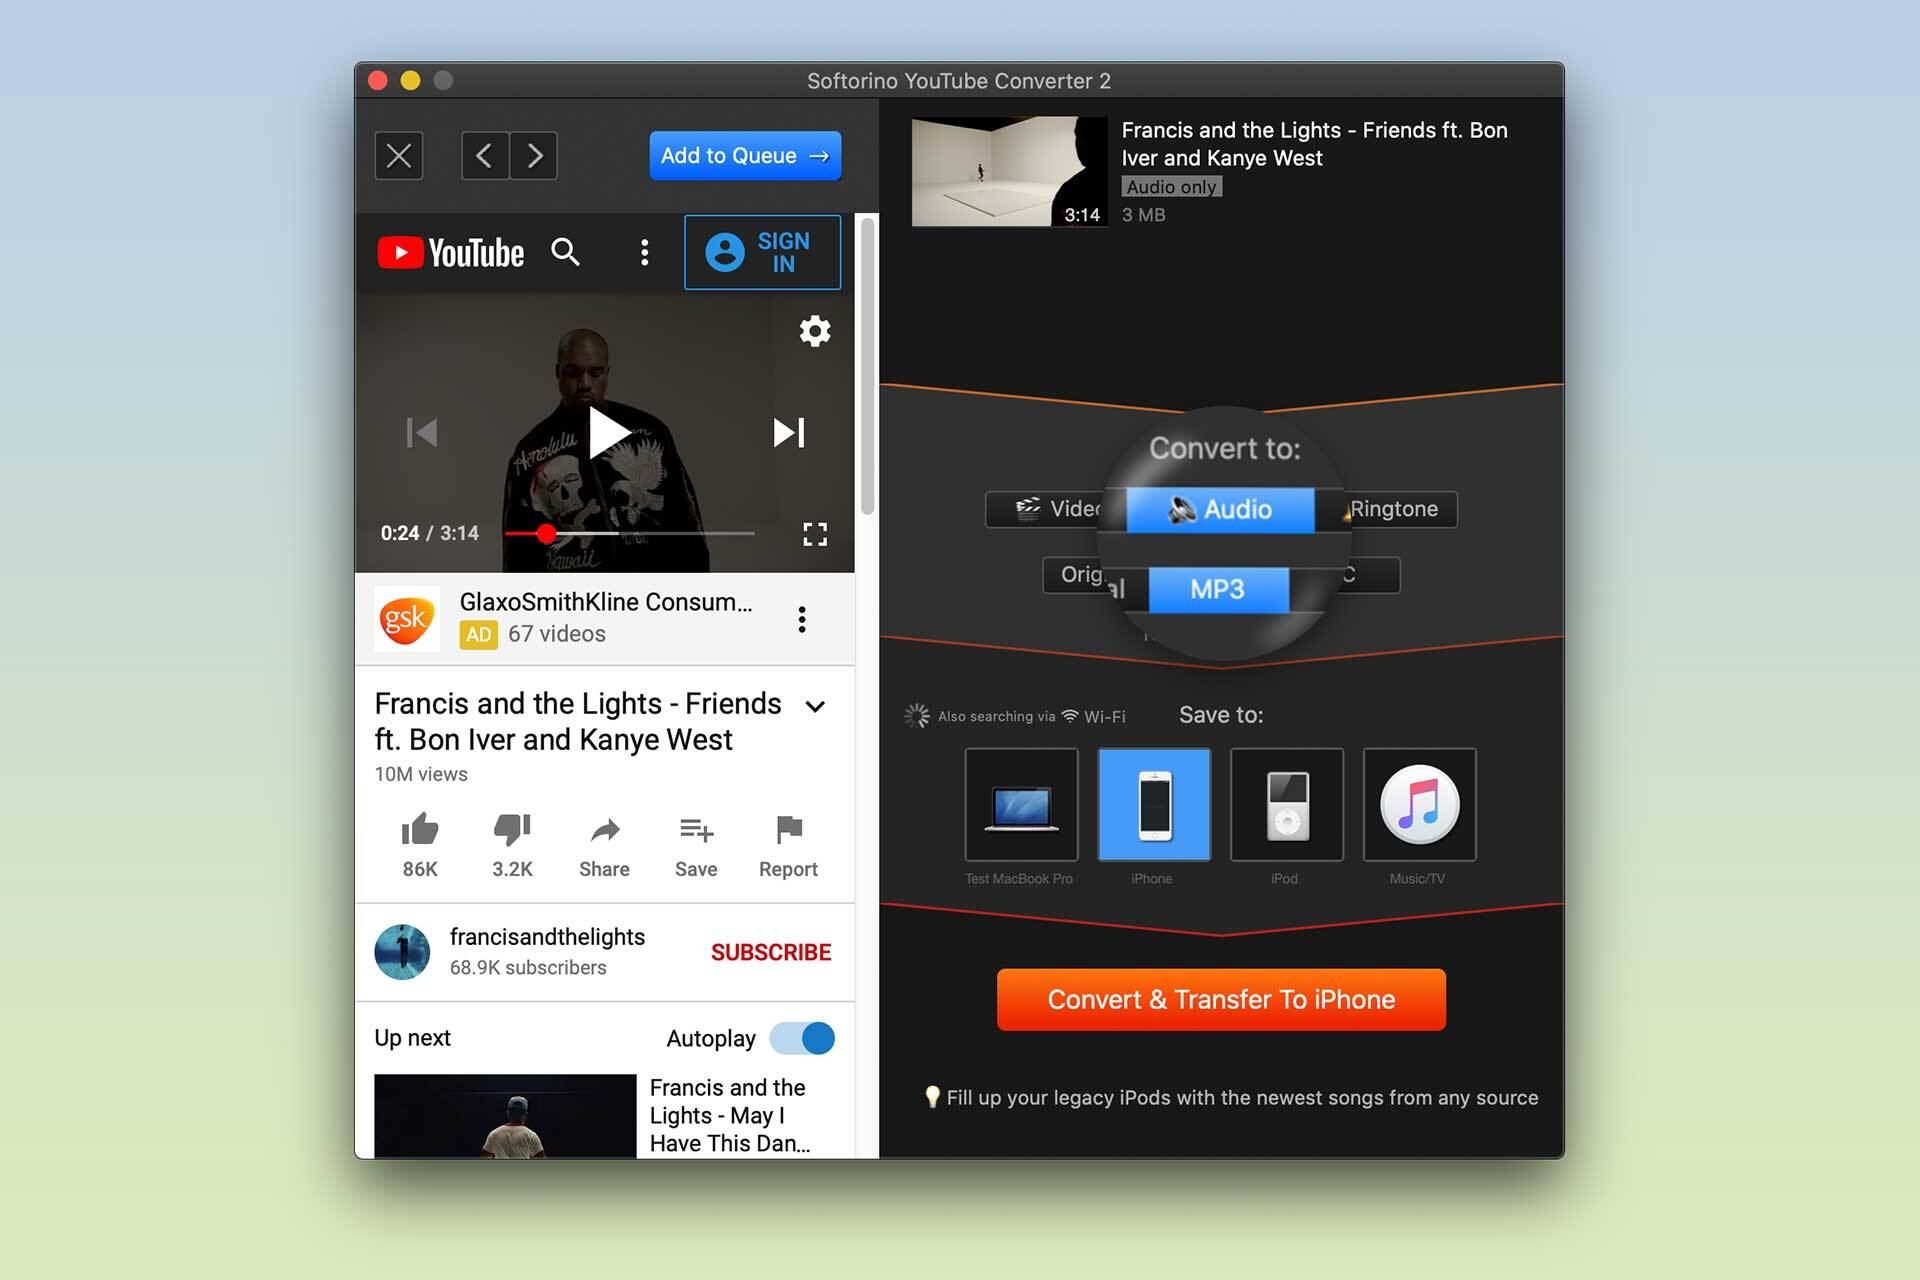 Ht Syc2 Build A Free Music Library With Youtube Converter 3